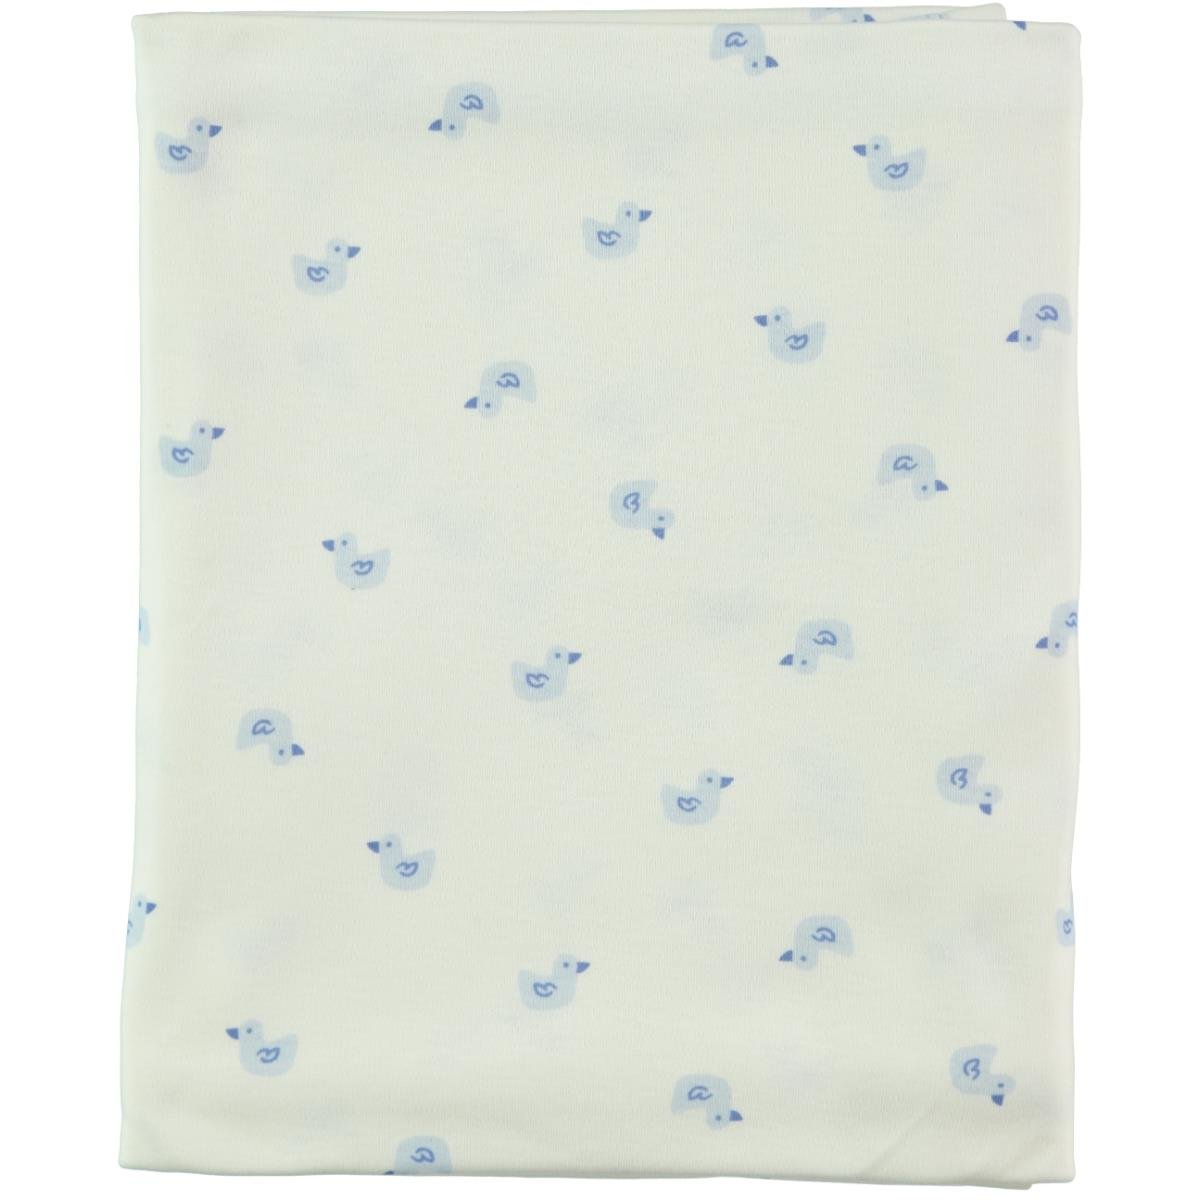 Civil Baby Baby double layer Blanket Blue 80x 90 cm.